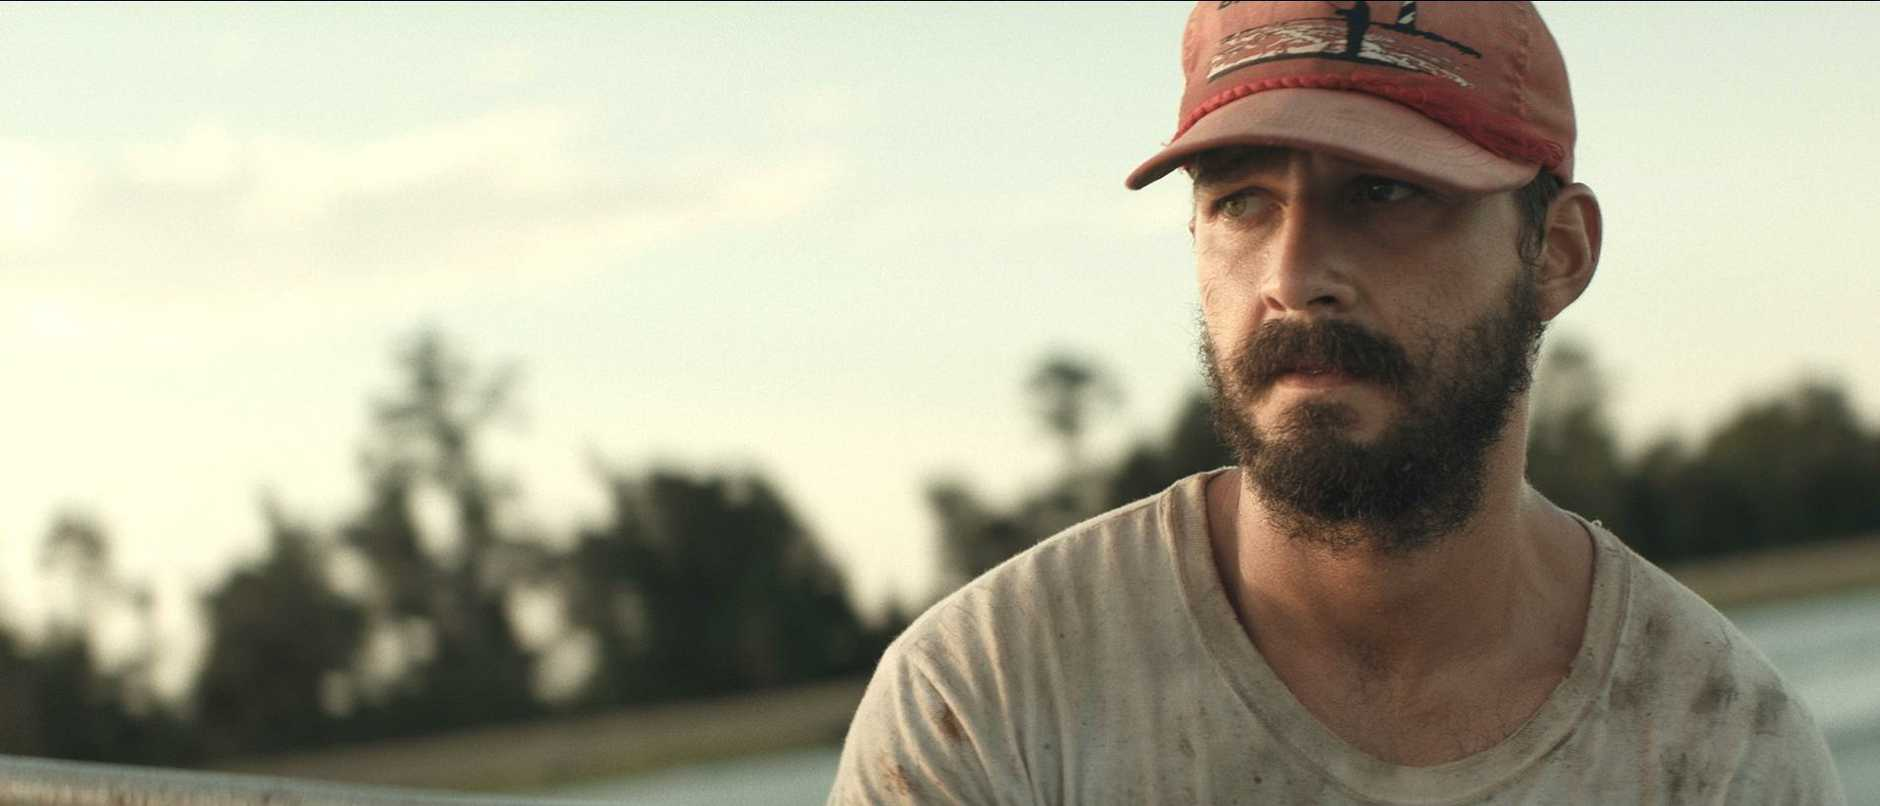 Shia LaBeouf in The Peanut Butter Falcon.